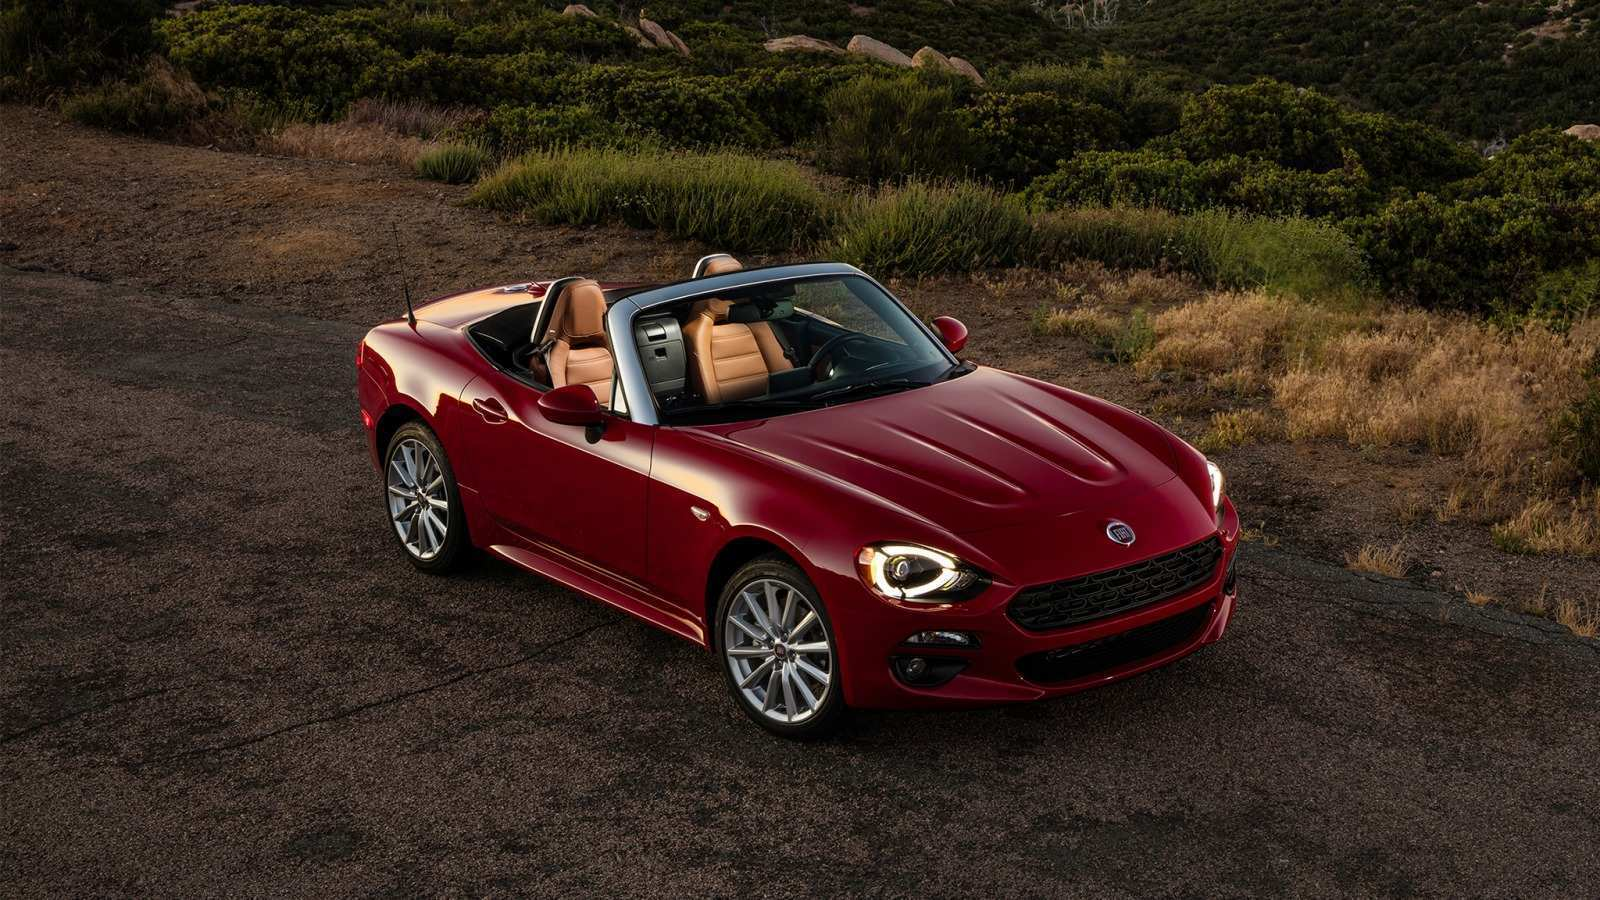 21 Great 2019 Fiat 124 Spider Lusso Wallpaper for 2019 Fiat 124 Spider Lusso